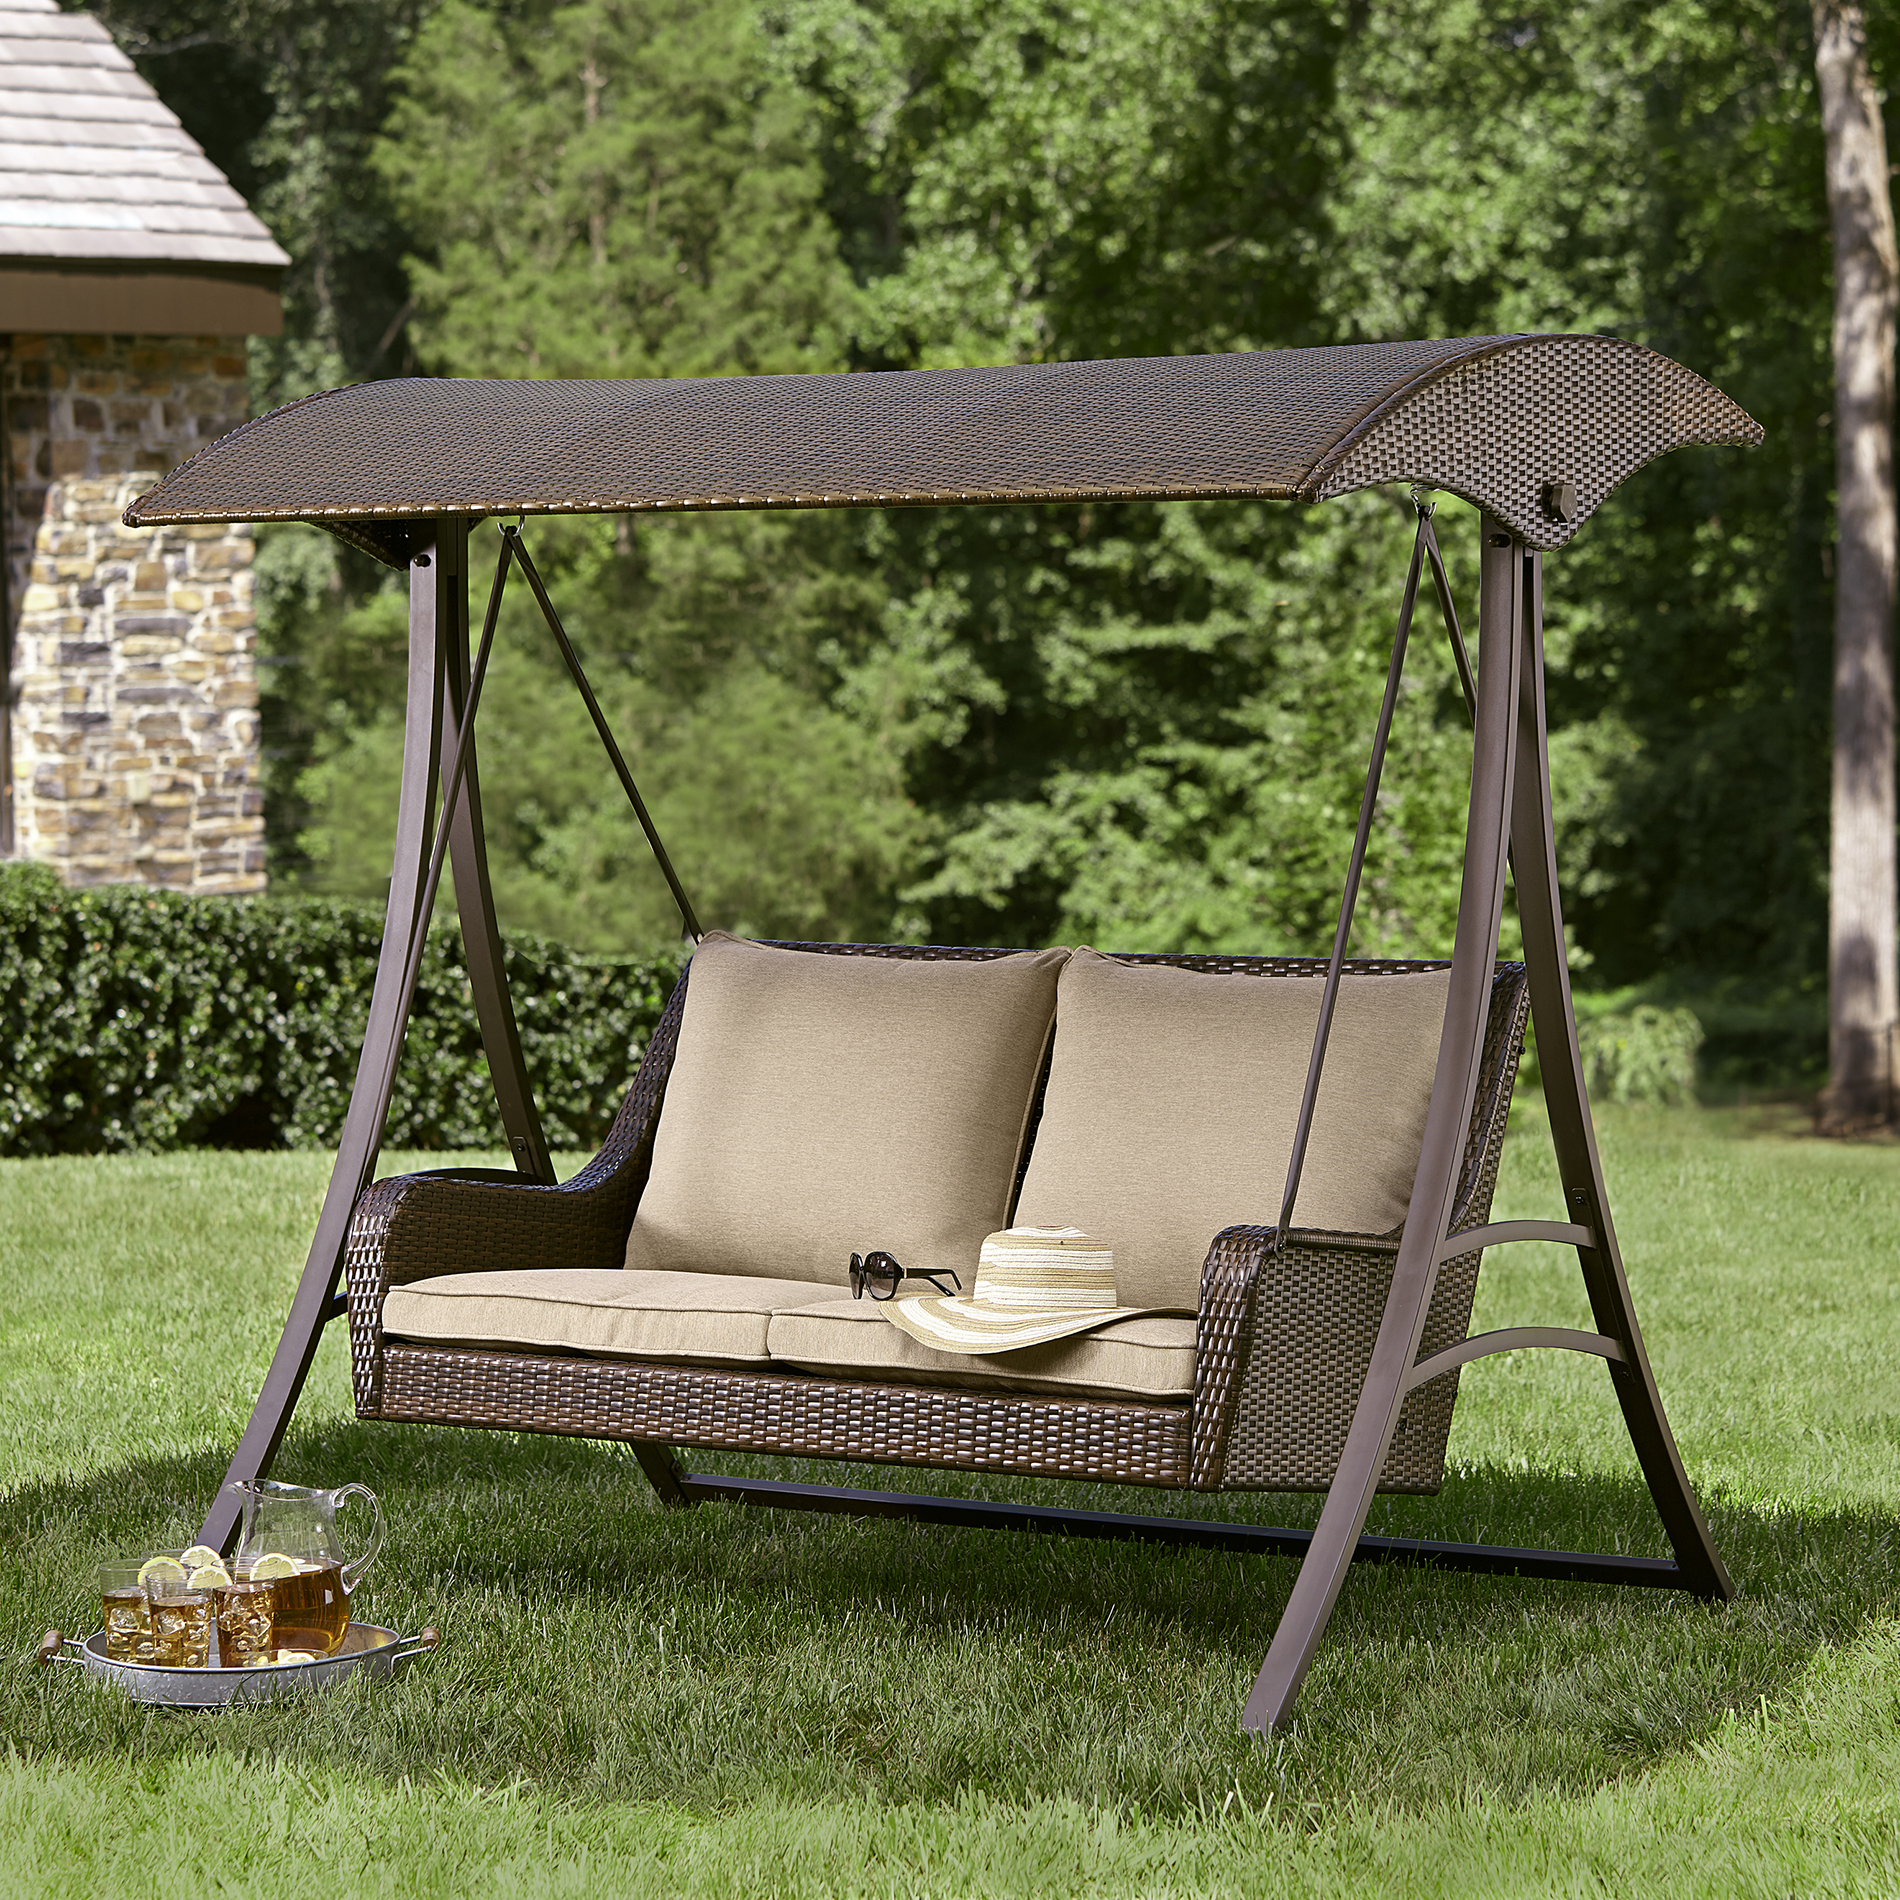 swing chair outdoor stackable resin chairs canada ty pennington style parkside wicker limited